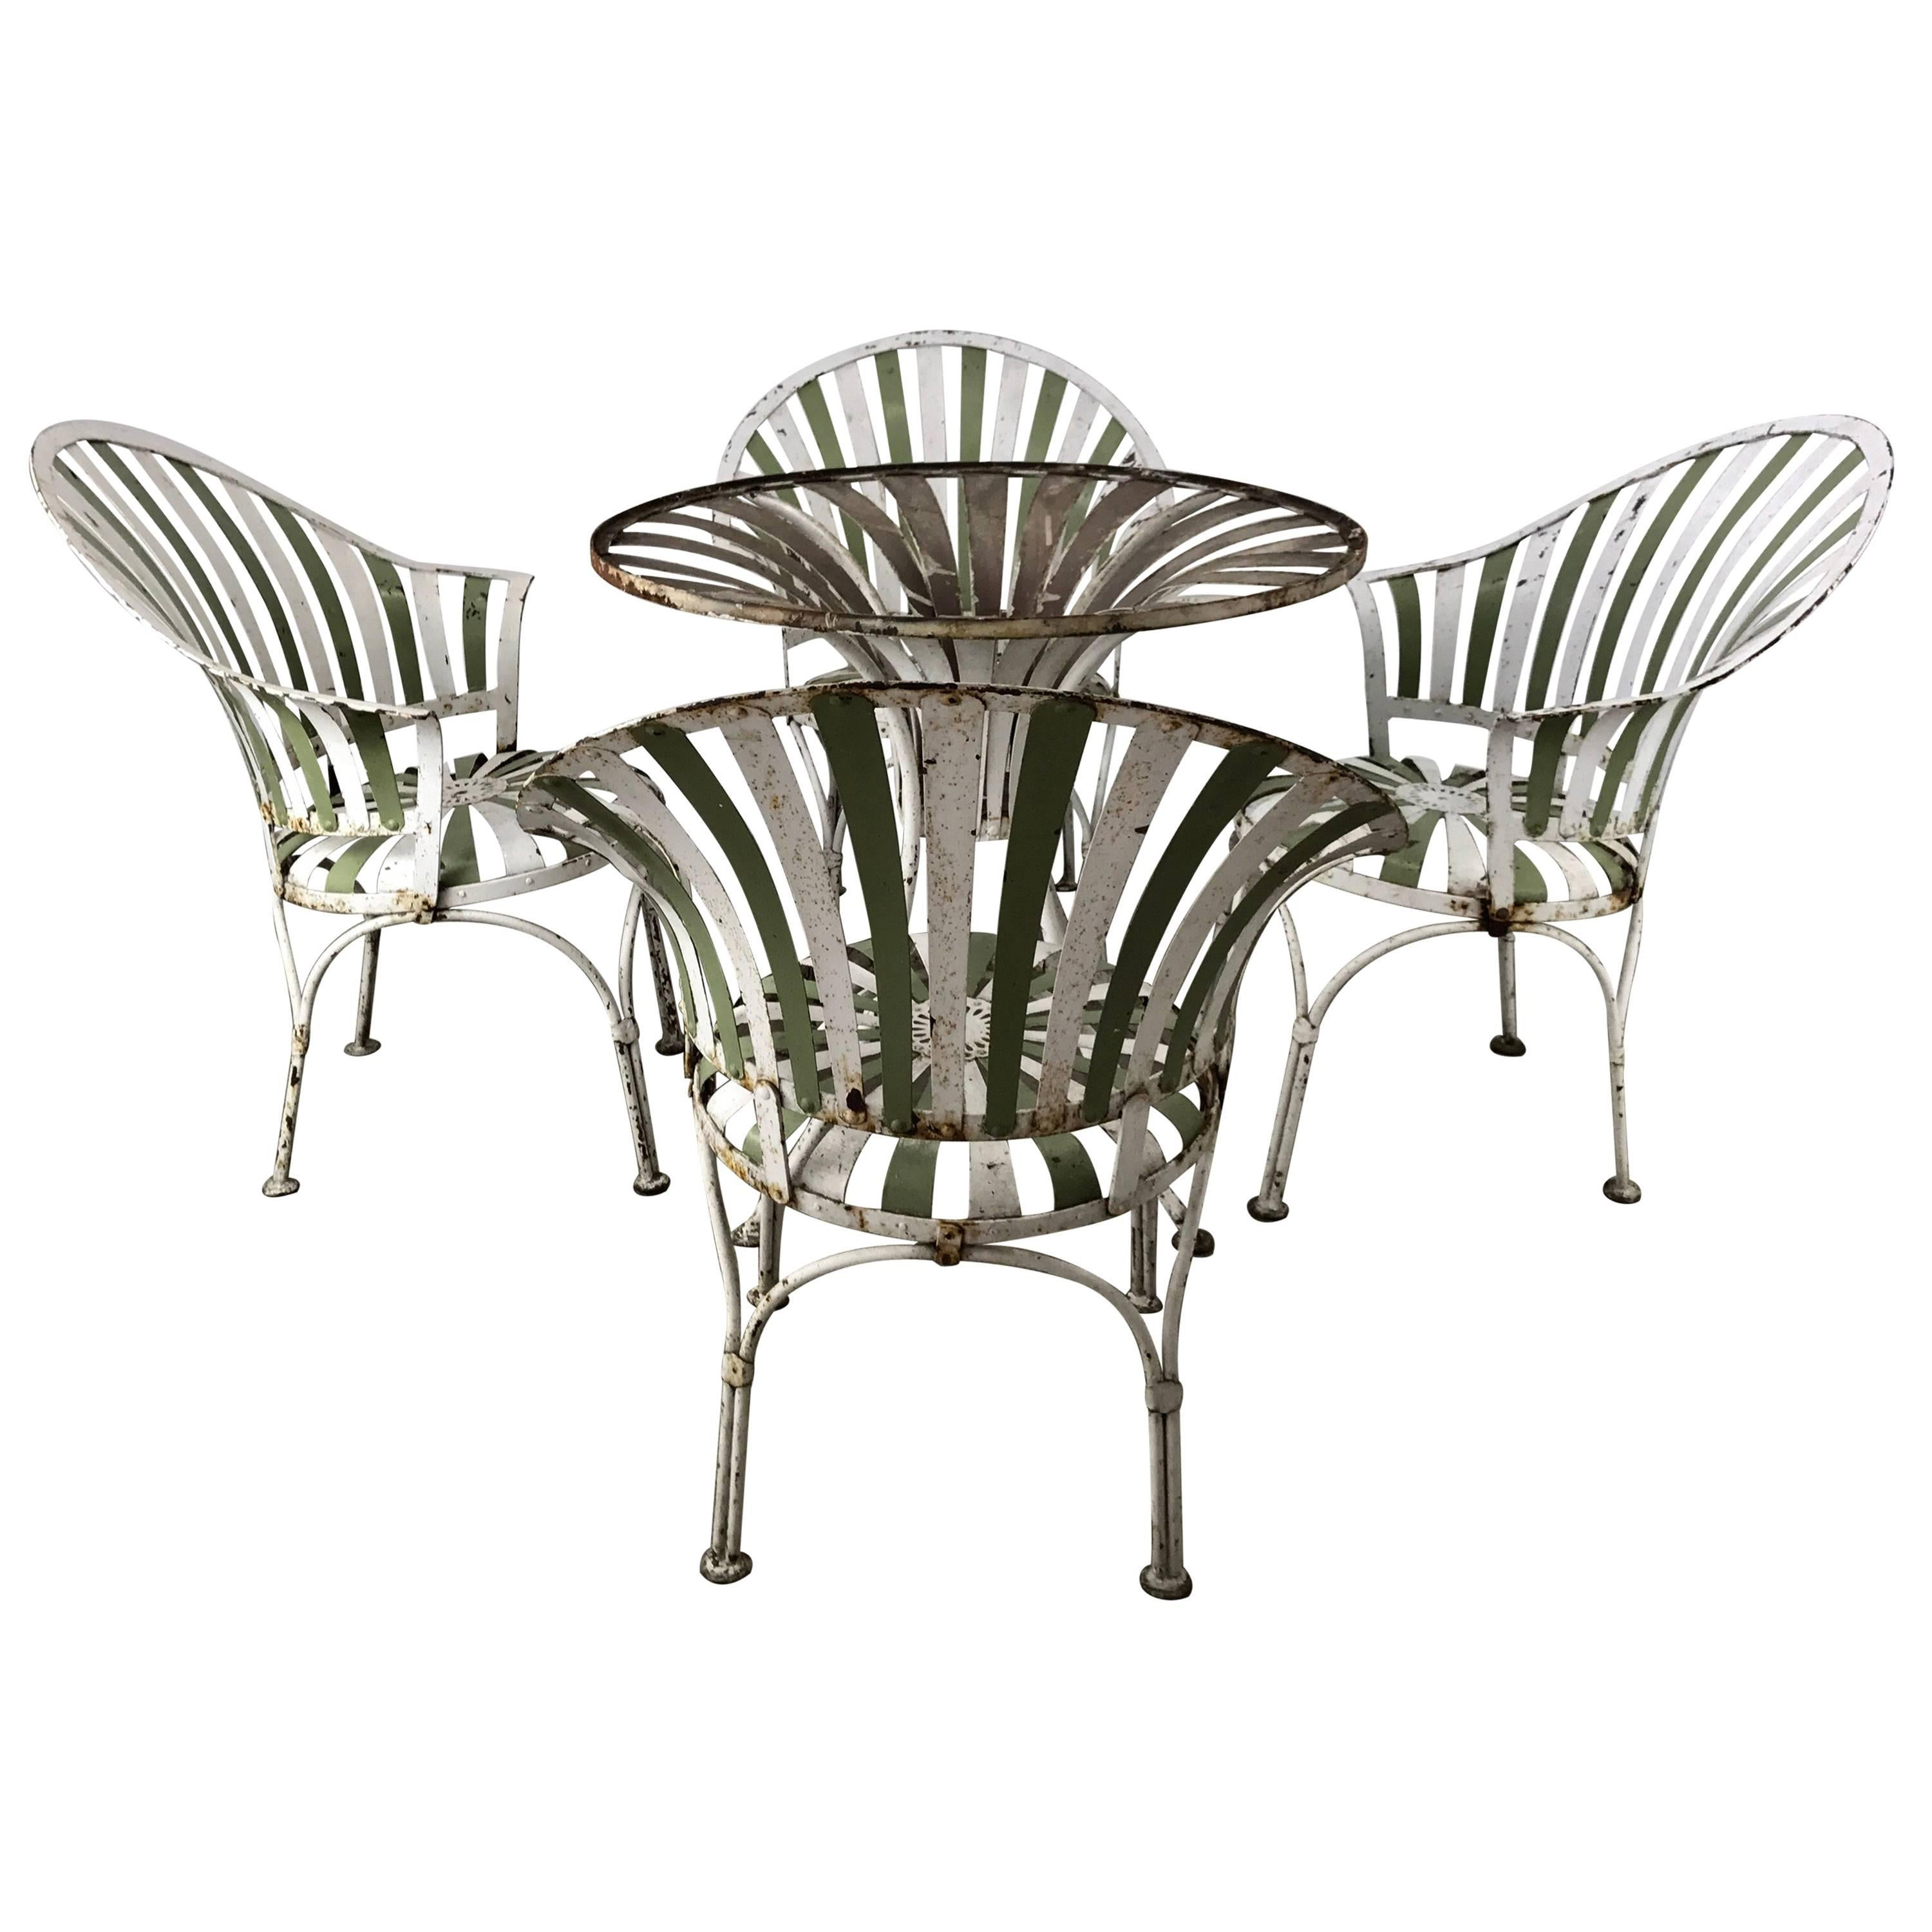 1930s Art Deco Metal Fan Back Garden Set Table And Chairs By Francois Carre For Sale At 1stdibs